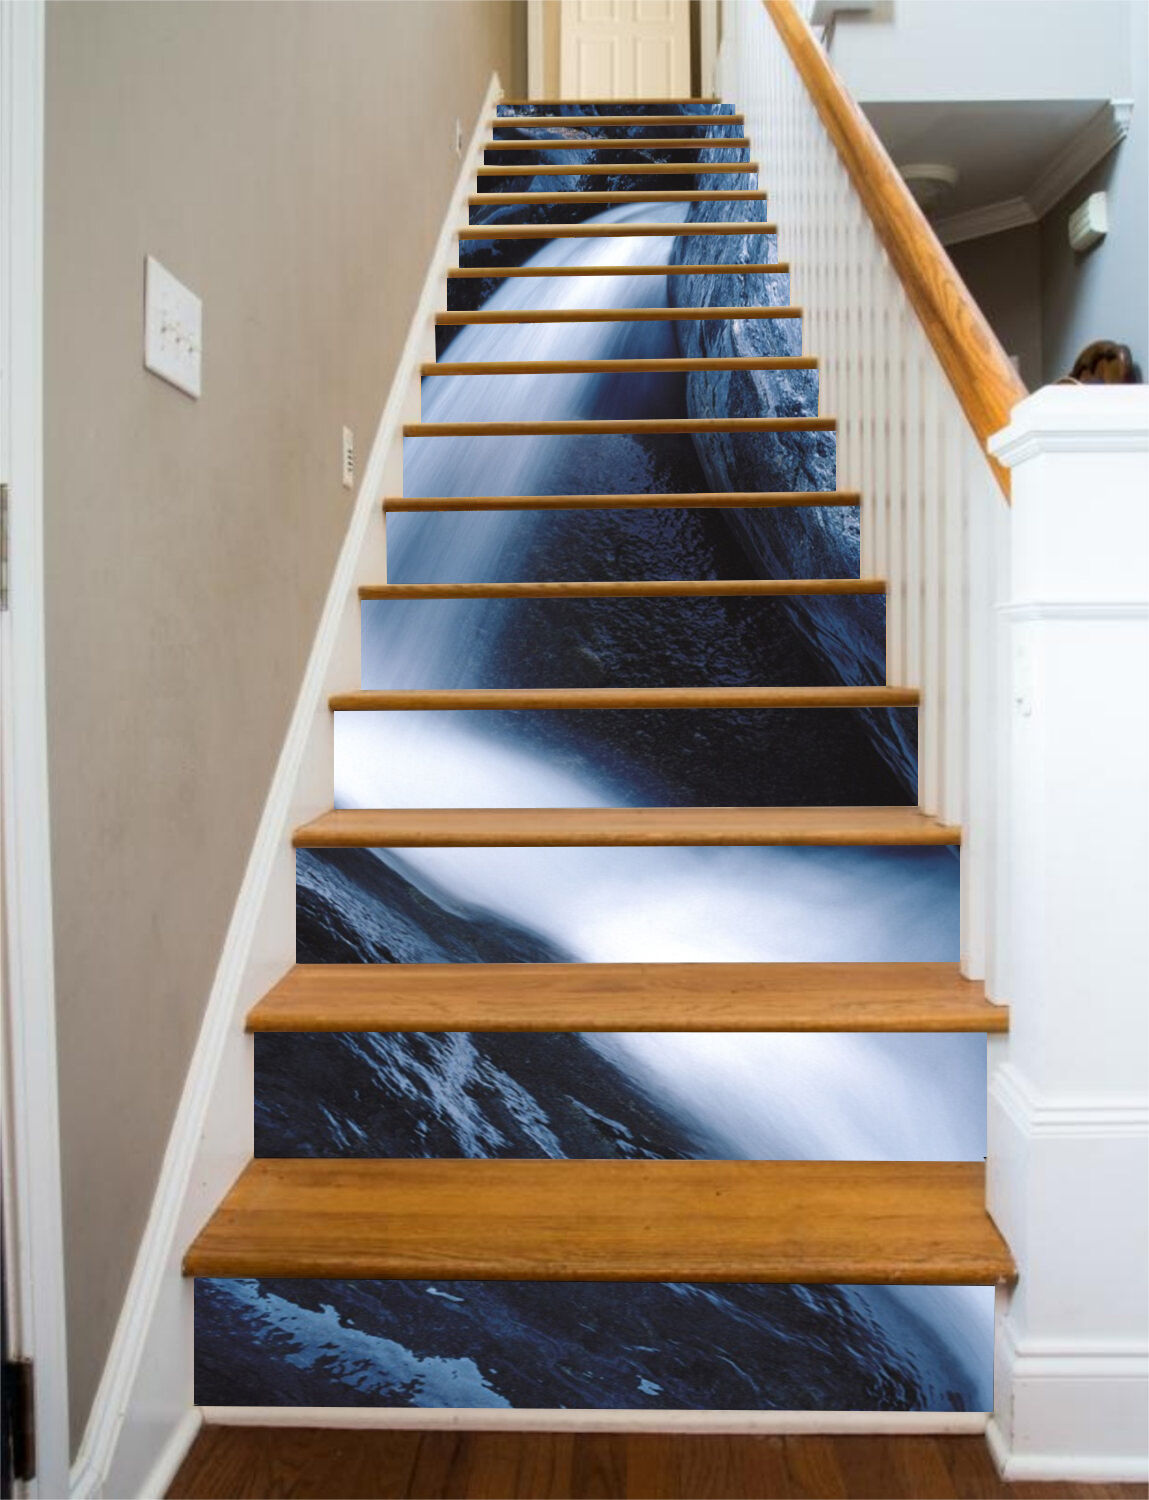 3D Stone, water 377 Stair Risers Decoration Photo Mural Vinyl Decal Wallpaper AU